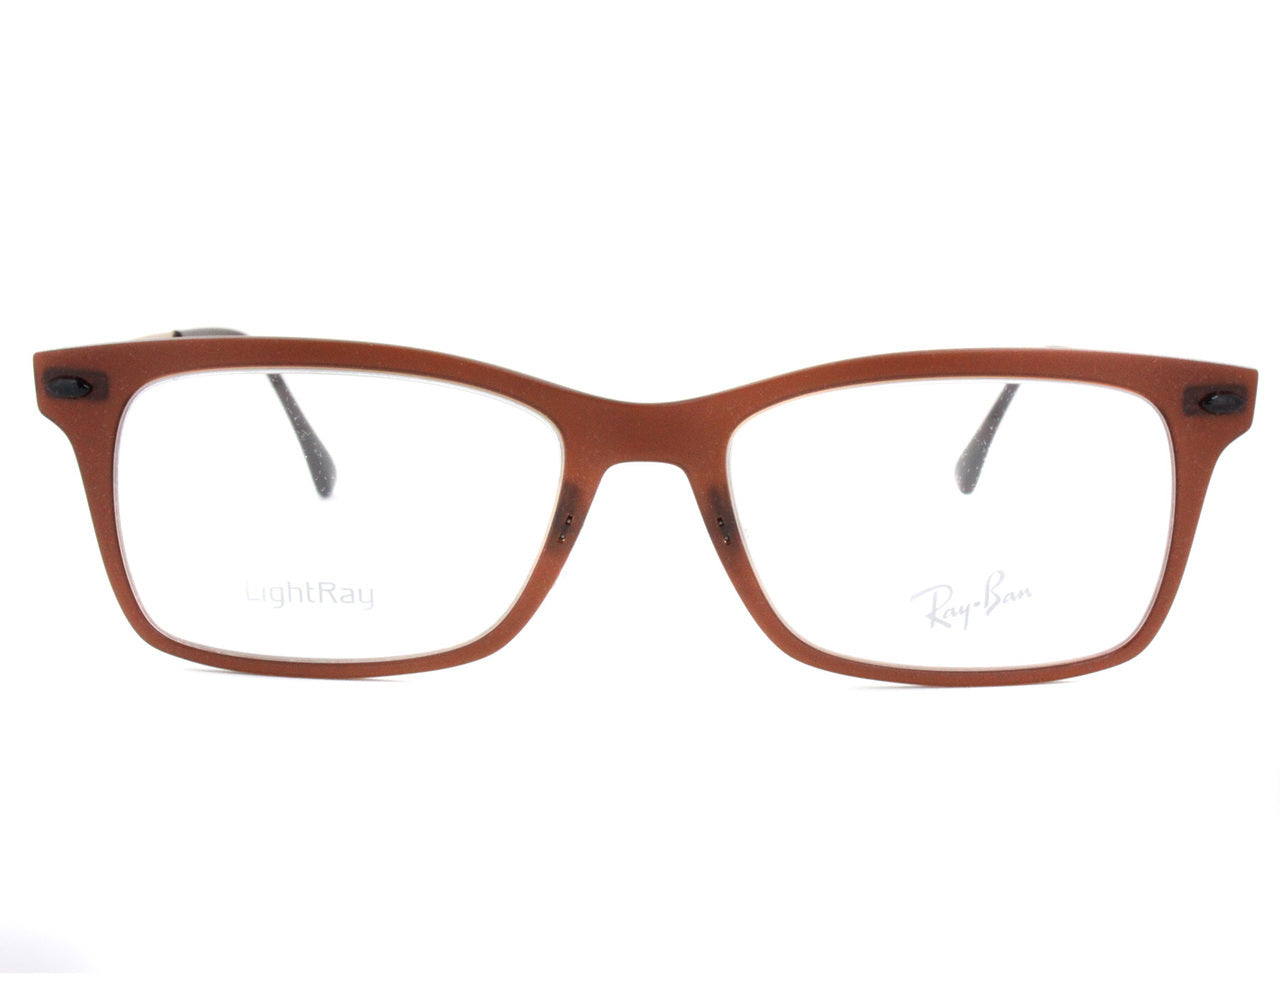 Ray Ban RB7039 5450 LightRay Eyeglasses RX-ABLE 53mm